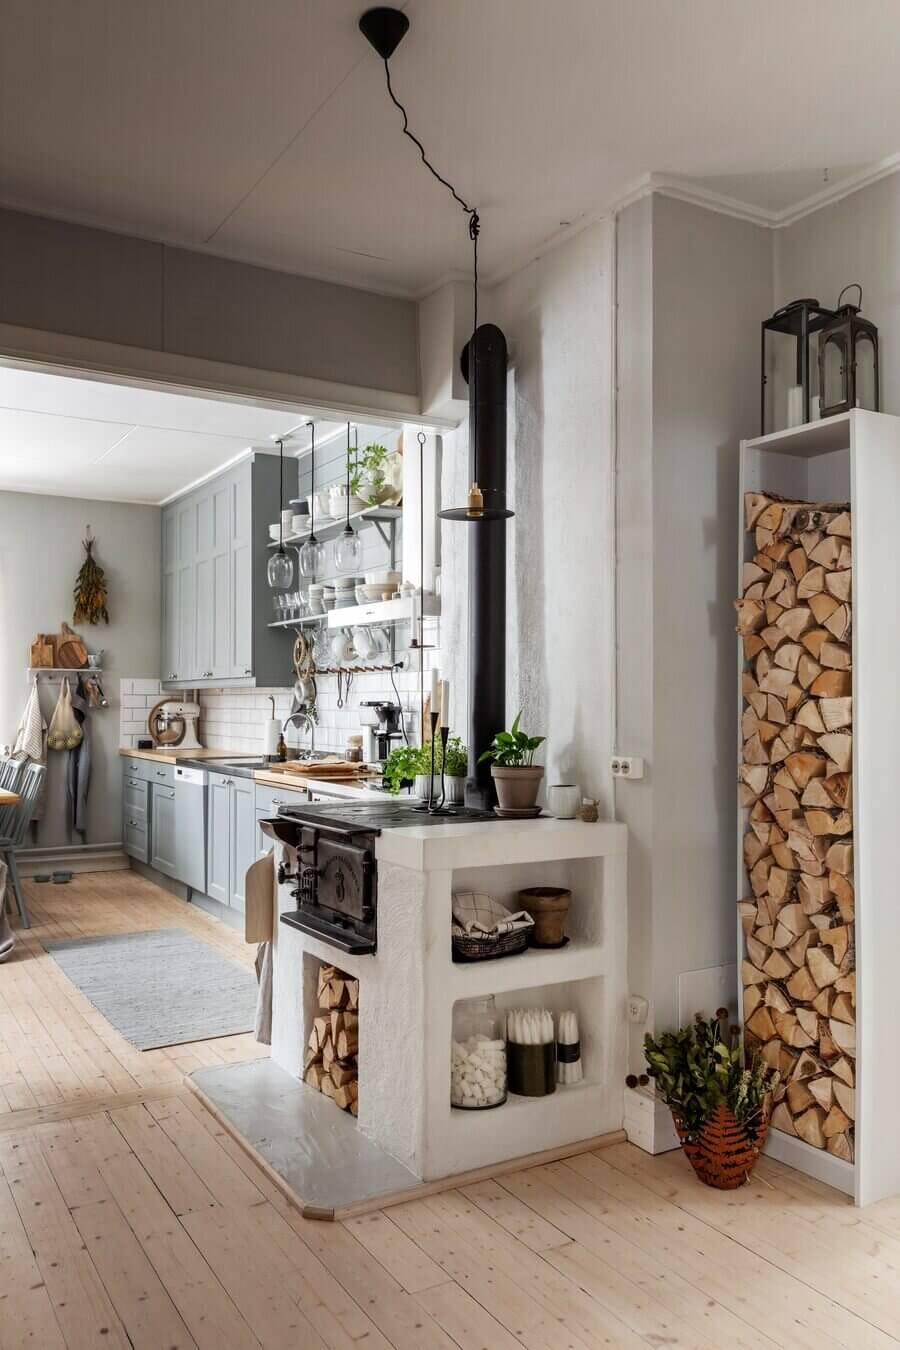 A Serene Vintage Home in Swedish Lapland